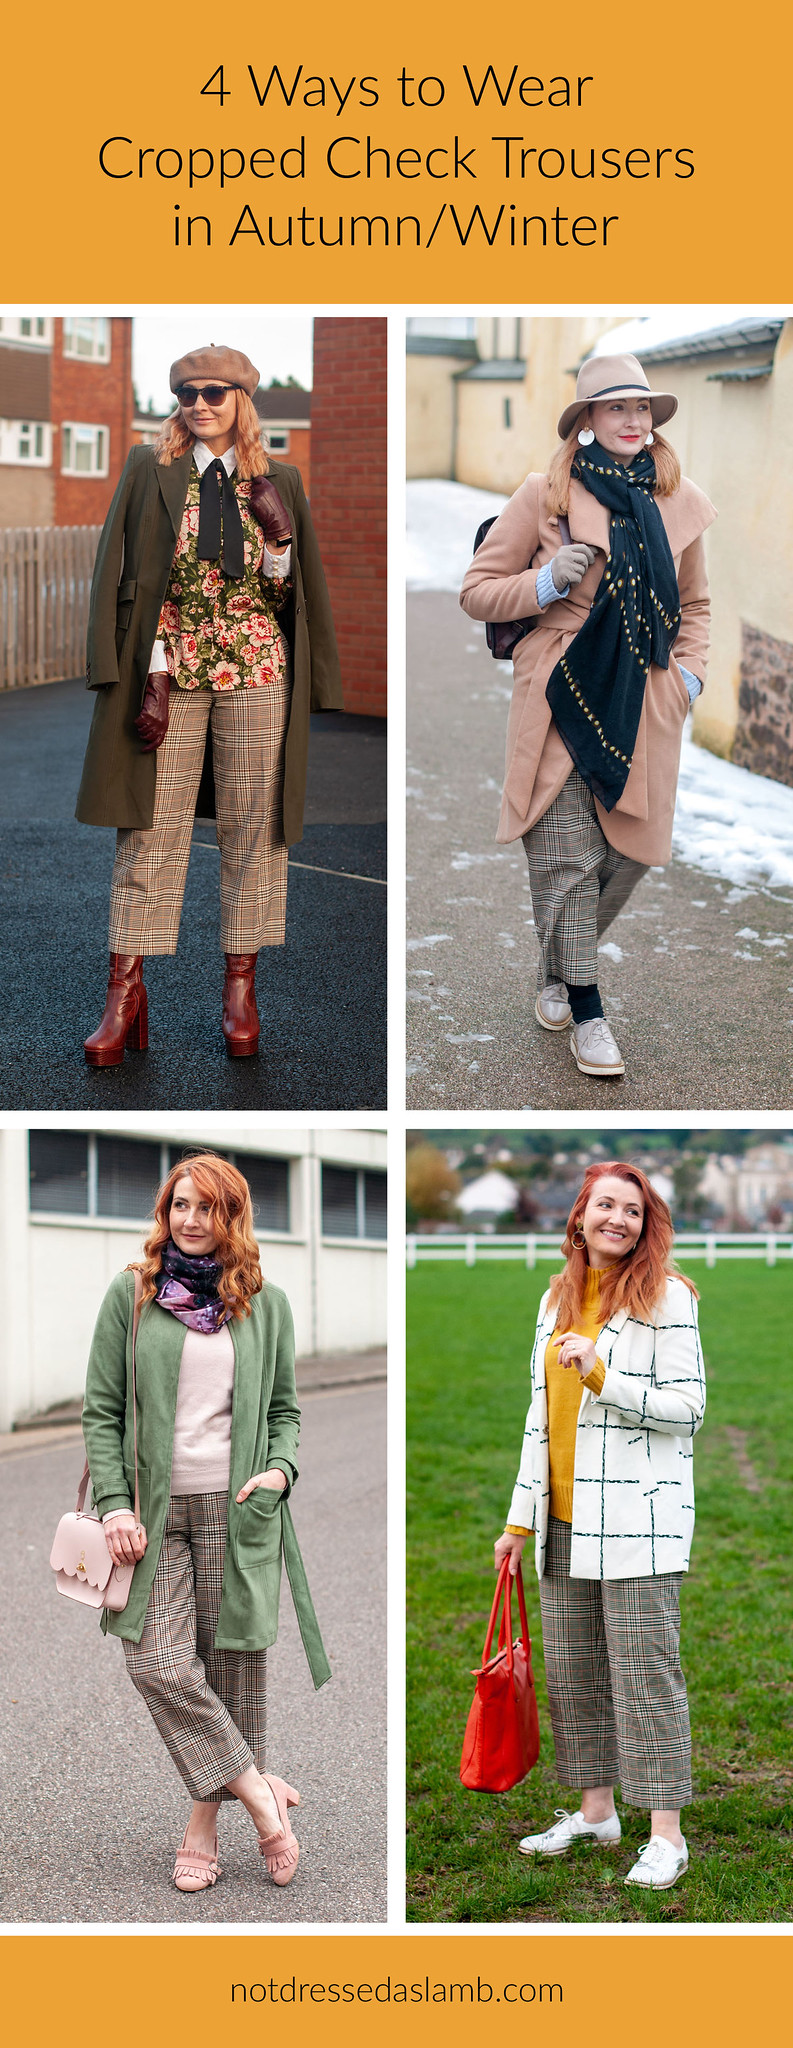 4 Ways to Wear Cropped Check Trousers | Not Dressed As Lamb, Fashion and Style for Over 40 Women